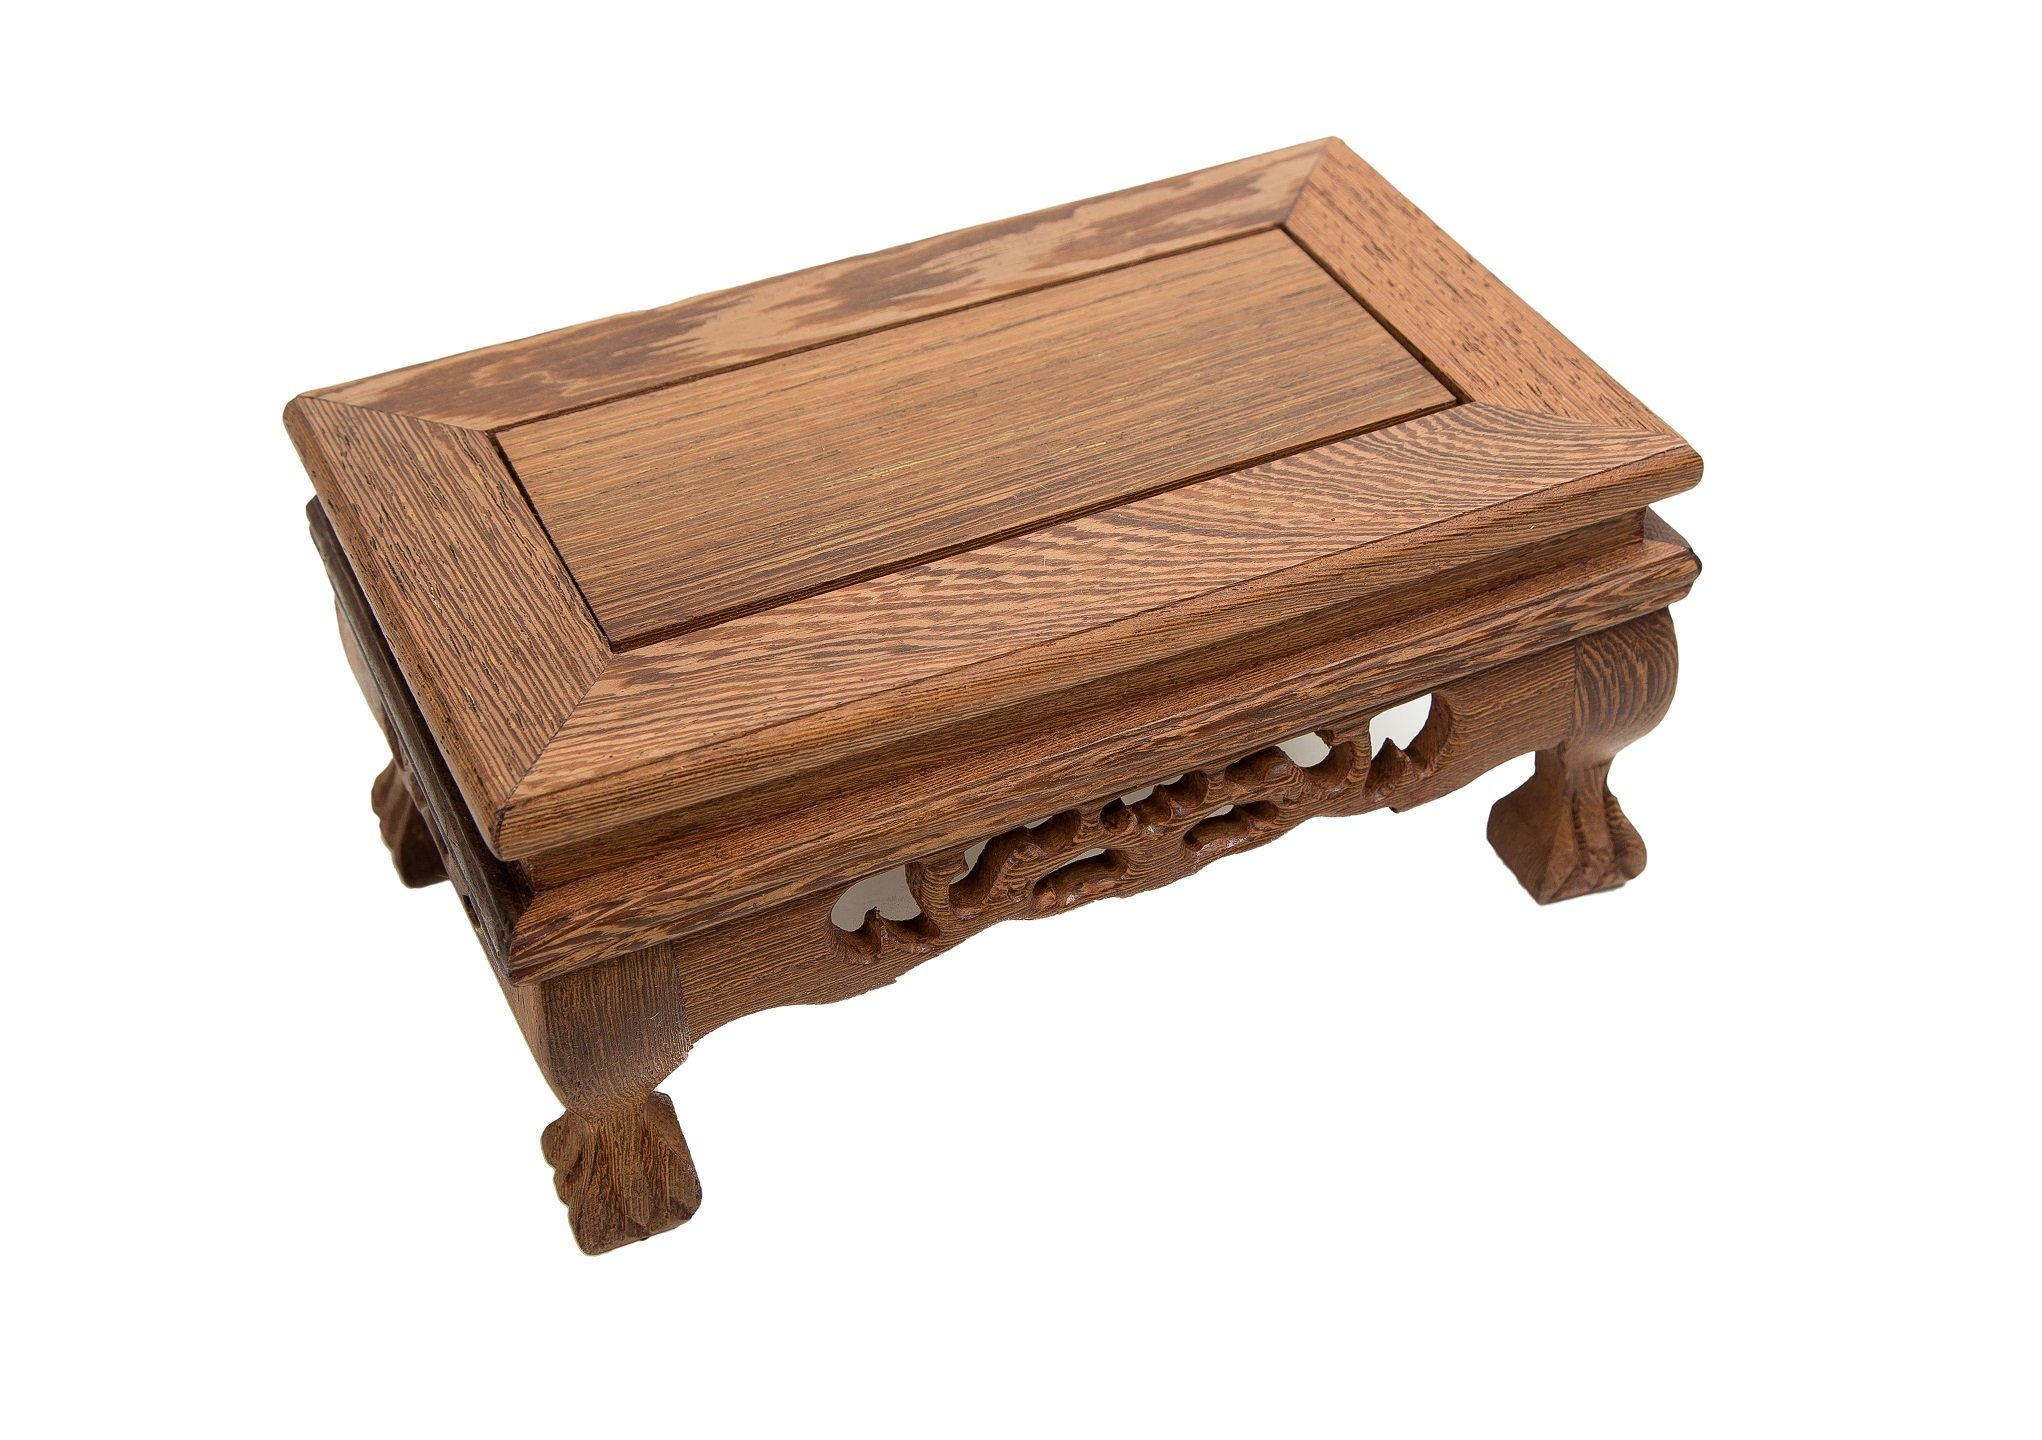 LuoLuo Chinese Display Stand Wooden Rectangle Shape Tiger Feet Carved Solid Rosewood JiChi Wood Display Base Holder For Arts Antique Etc, Home Decoration (S 18.5cm11cm9cm) by LuoLuo (Image #6)